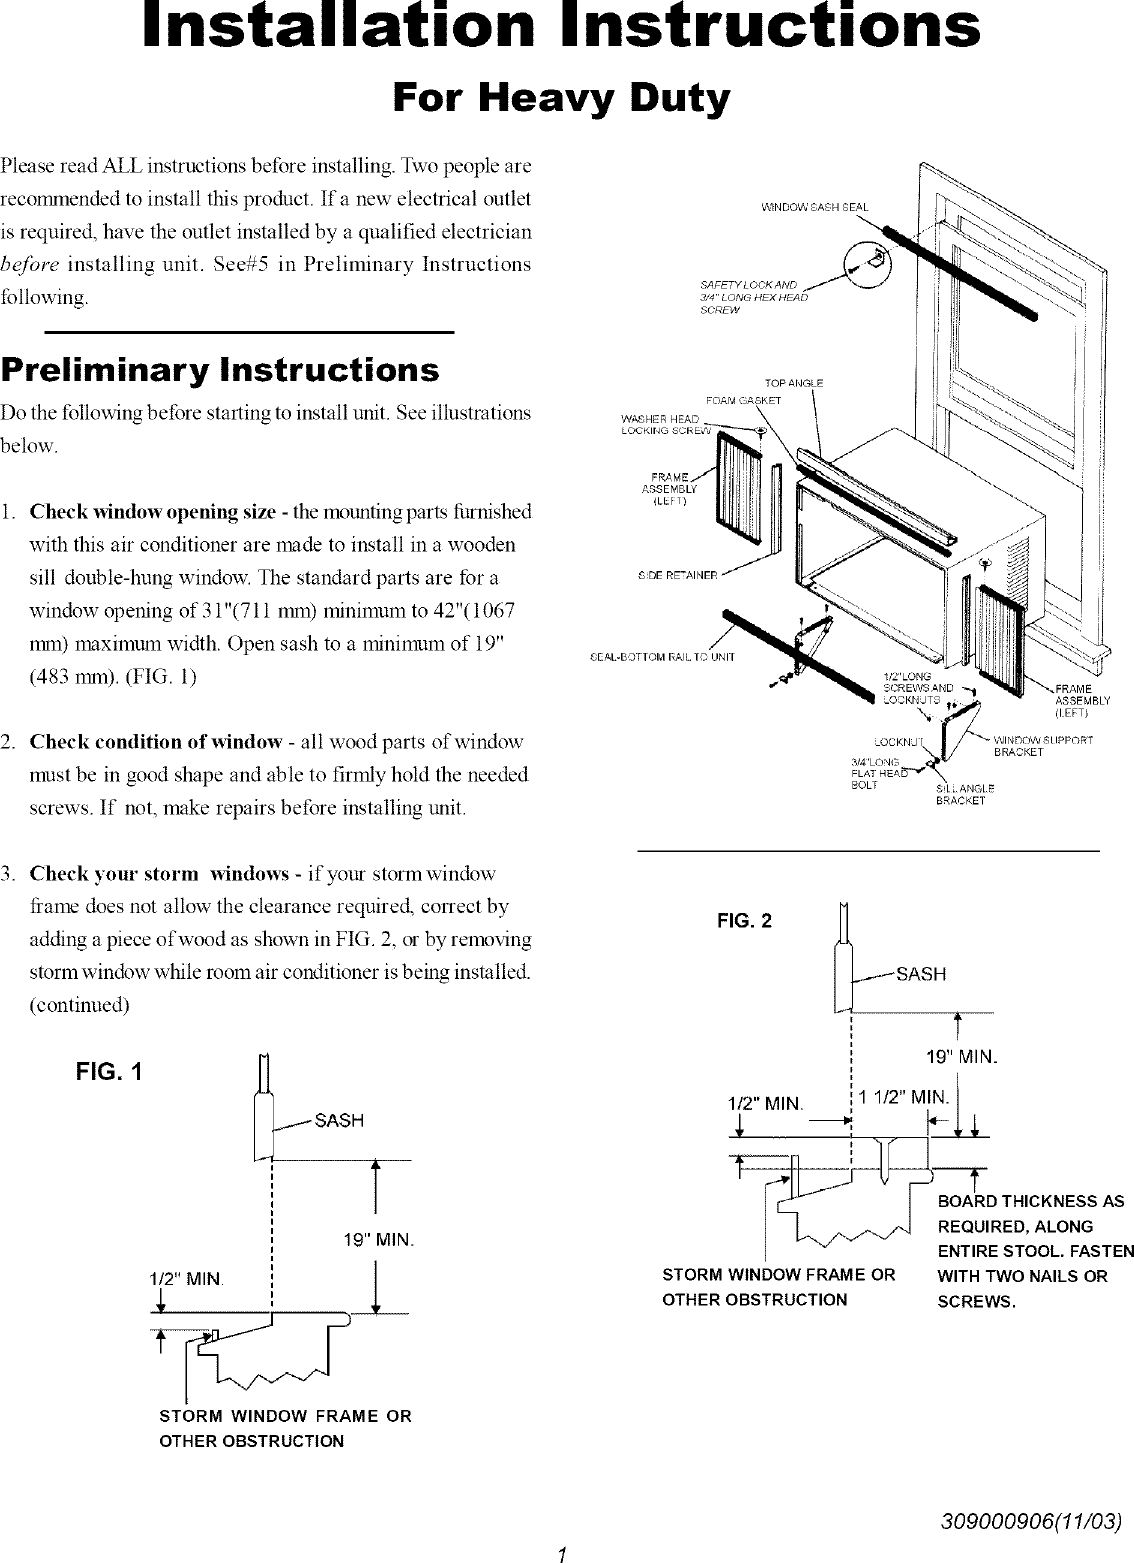 frigidaire fas156n1a2 user manual air conditioner manuals and guides rh usermanual wiki frigidaire window air conditioner user manual frigidaire air conditioner manual